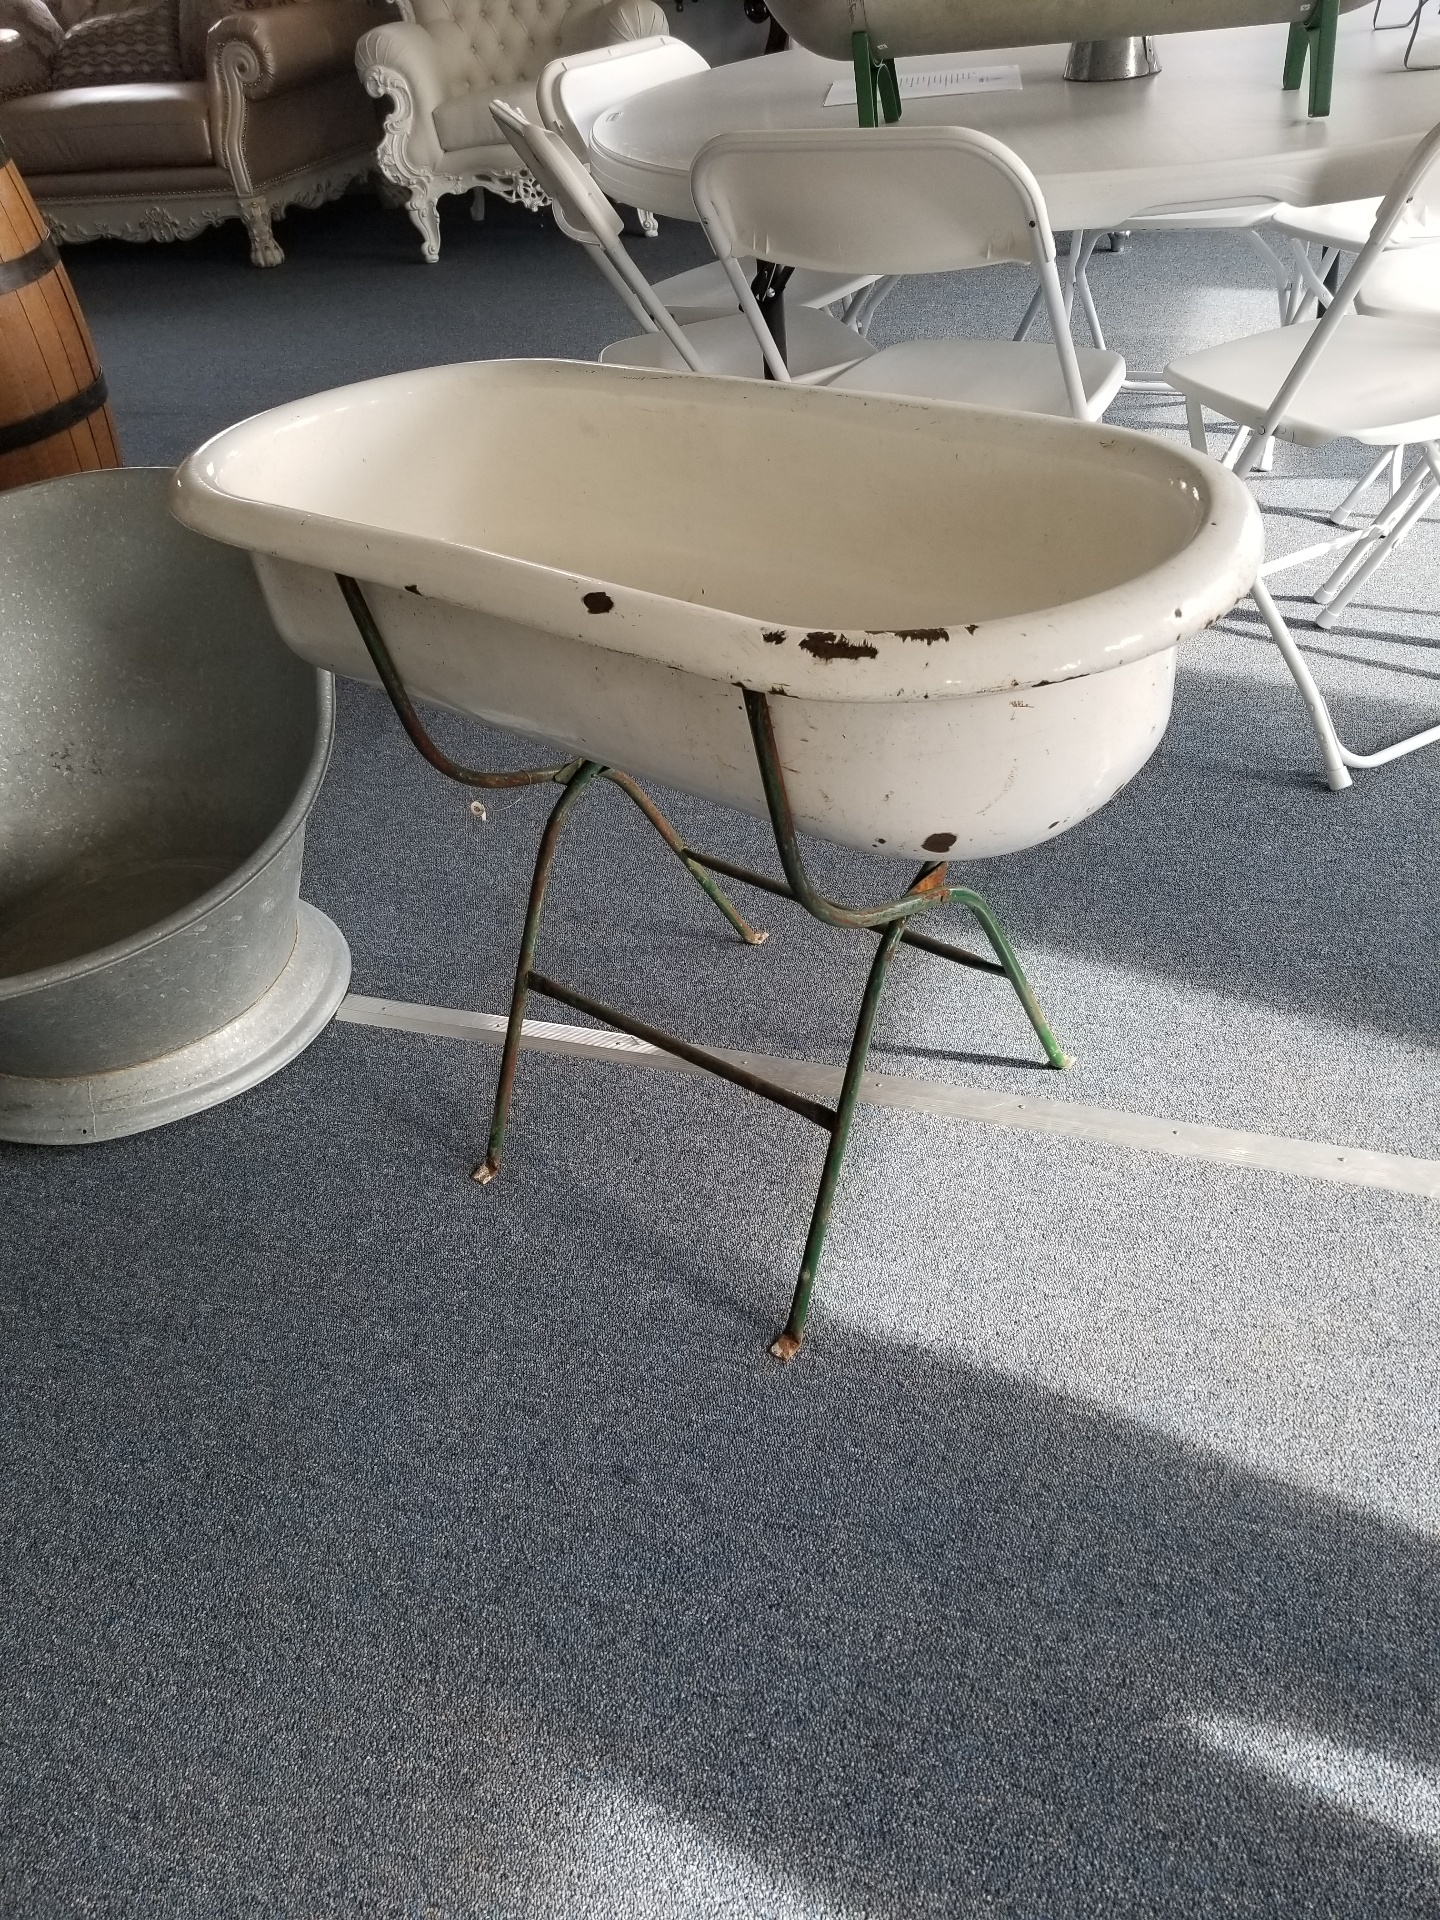 Small Porcelain Tub on Stand $25 / Day